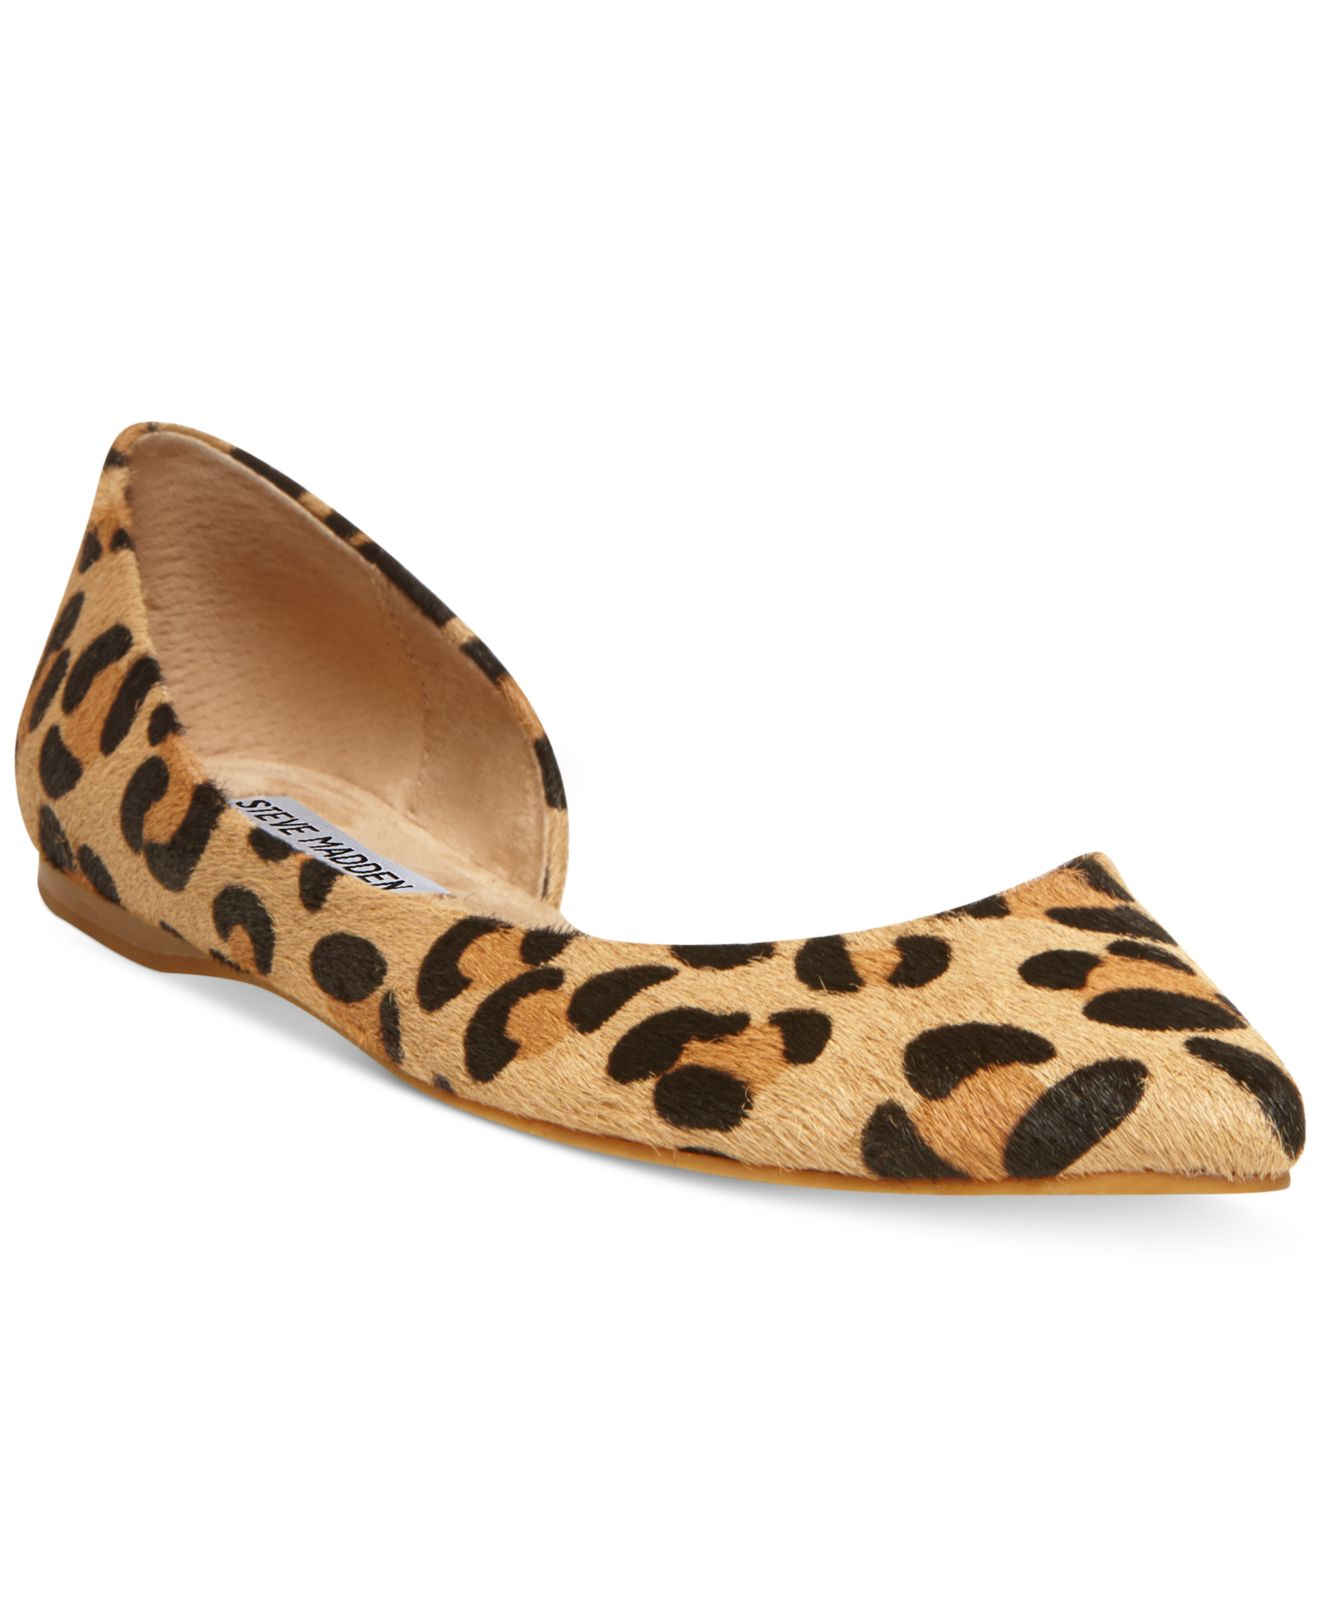 73d40ed3dd0 Lyst - Steve Madden Elusion D'Orsay Flats in Brown